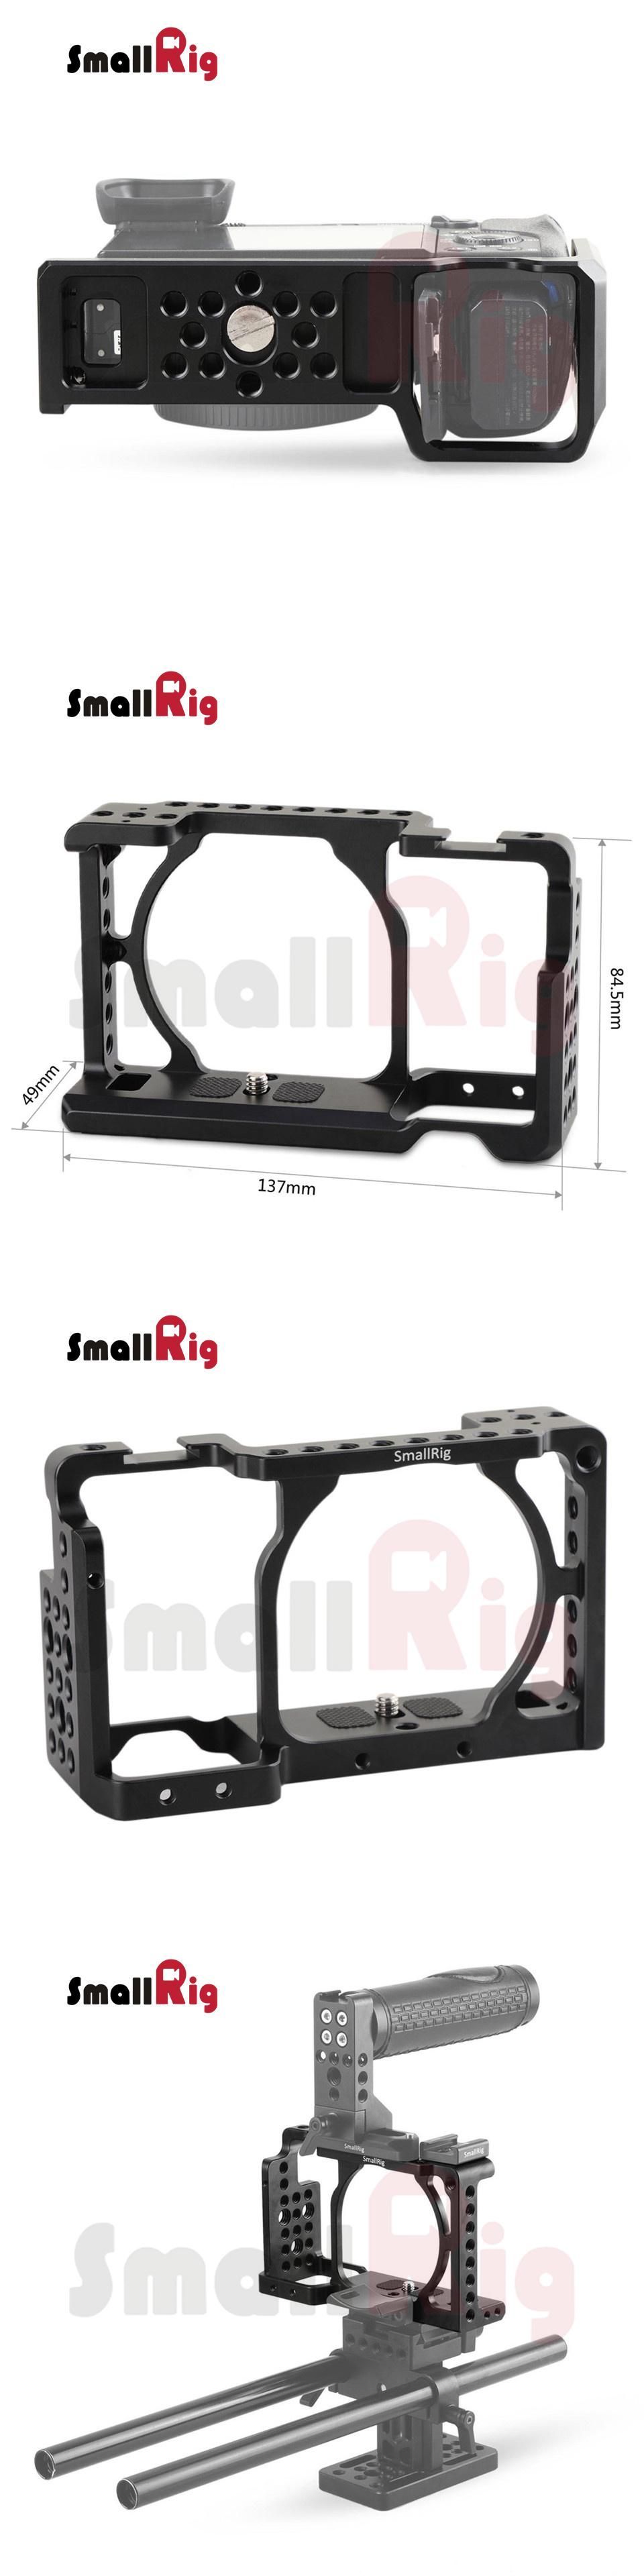 SmallRig Cage for Sony A6500 A6300 A6000 ILCE 6000 ILCE